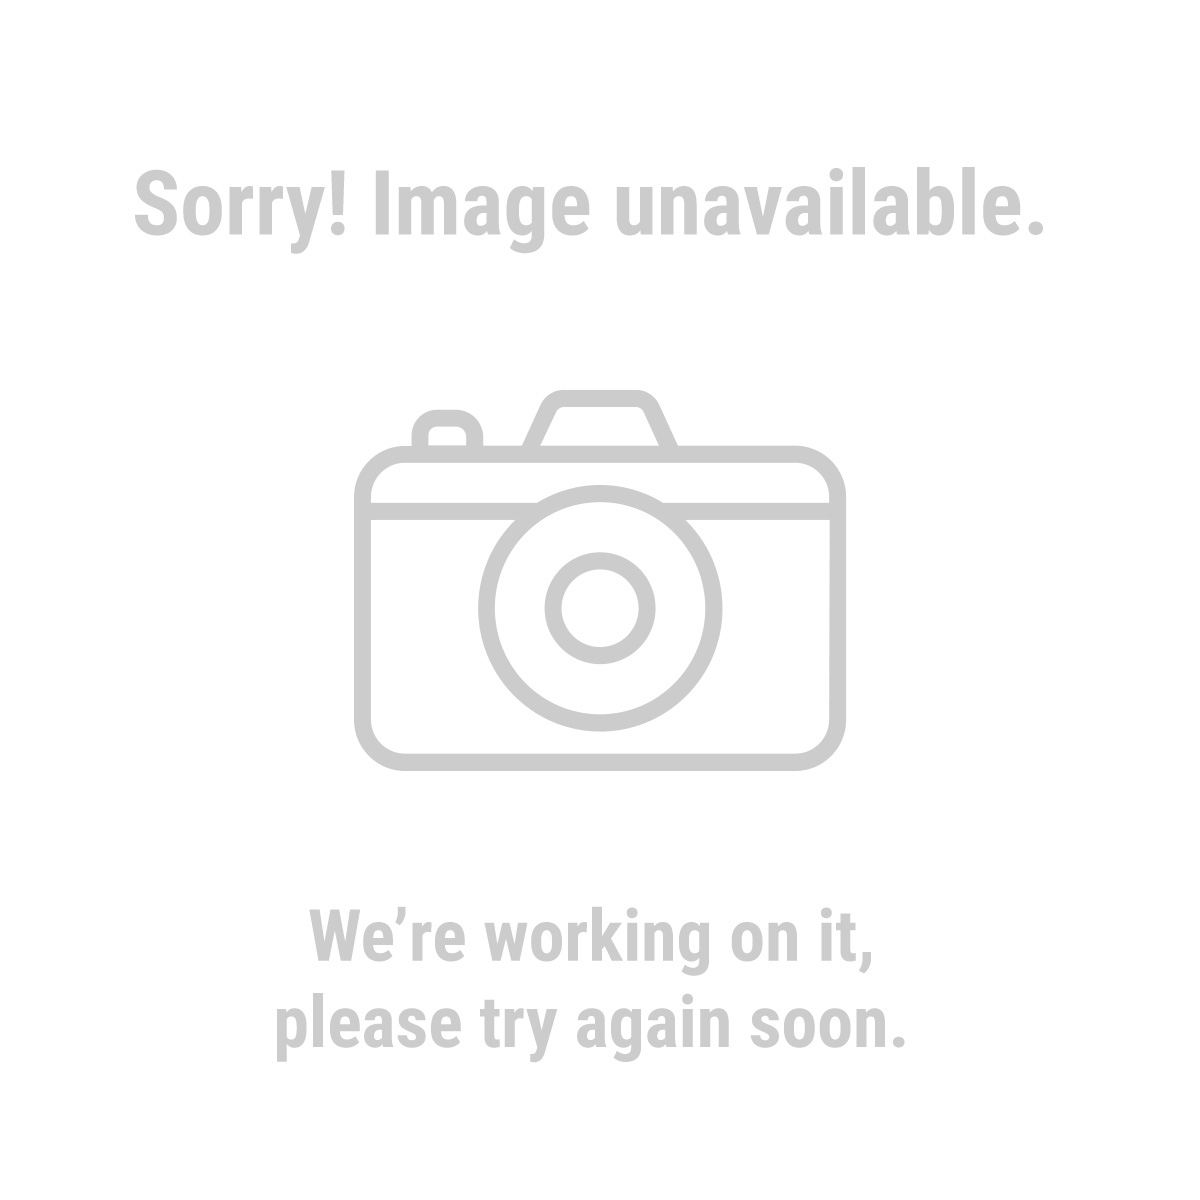 "Central Pneumatic 60356 8 Ft. - 15 Ft. x 3/8"" Rubber Air Hose Remnant"